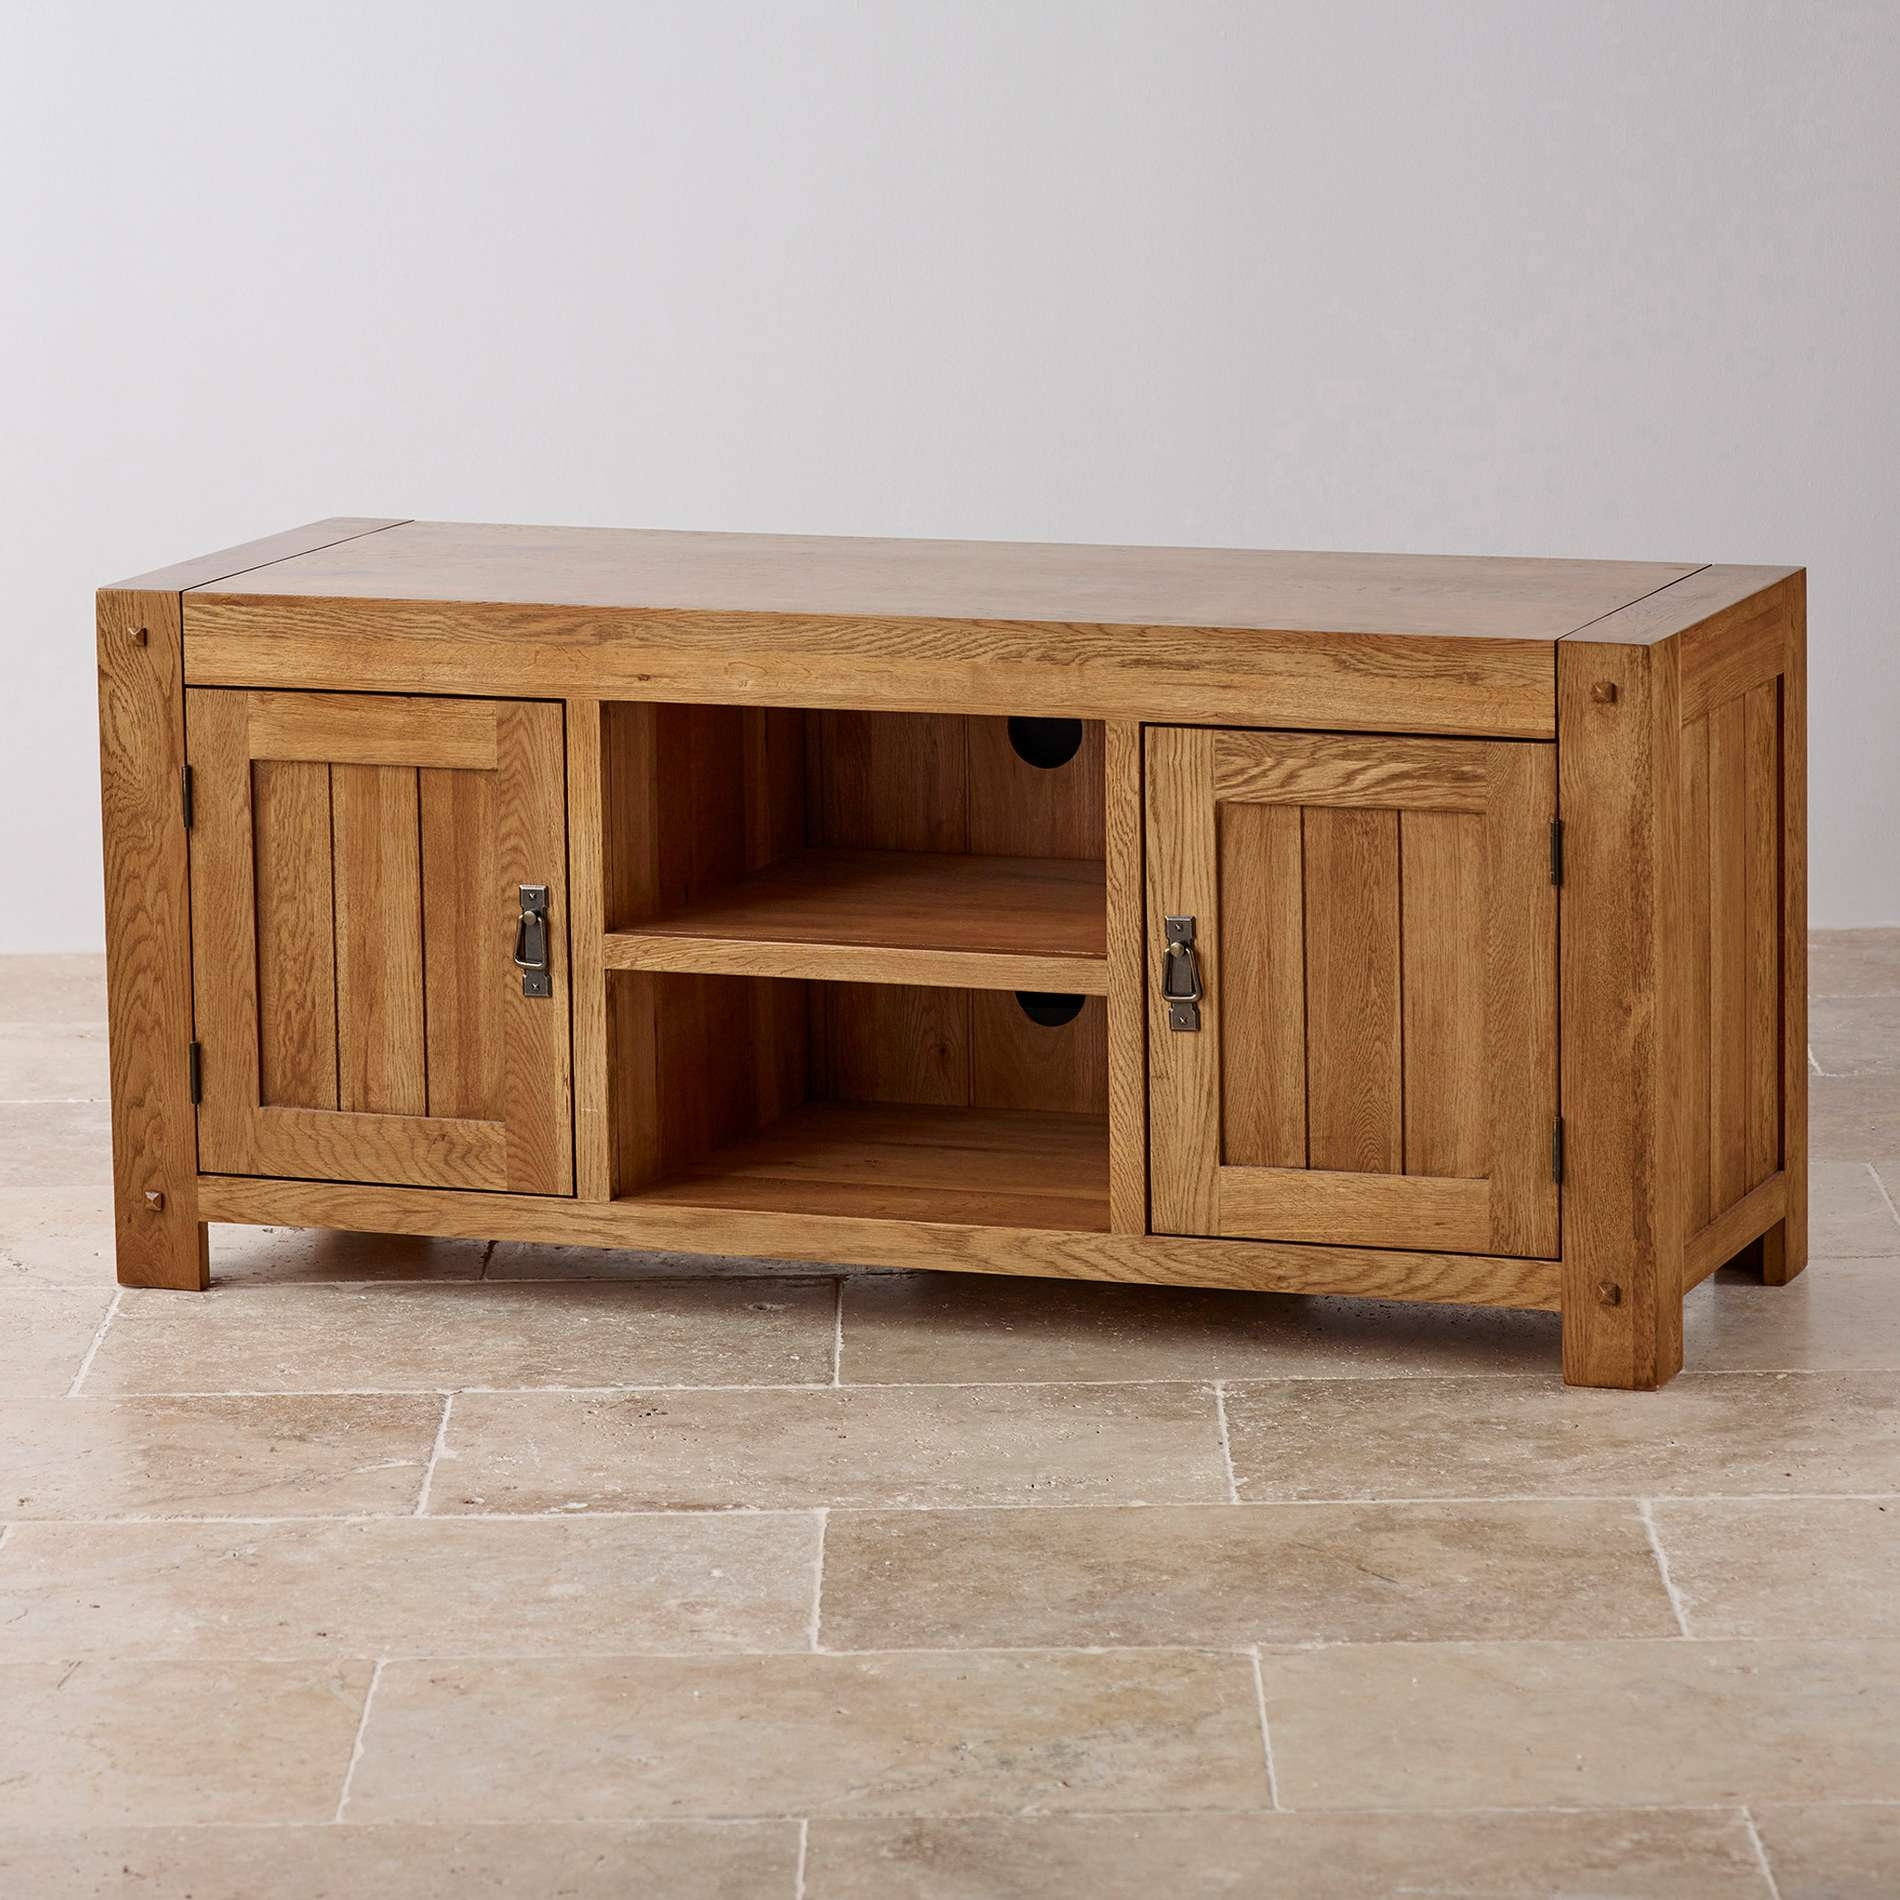 Tv Cabinets | Mango, Painted & Oak Tv Units | Oak Furniture Land With Regard To Oak Tv Cabinets With Doors (View 3 of 20)